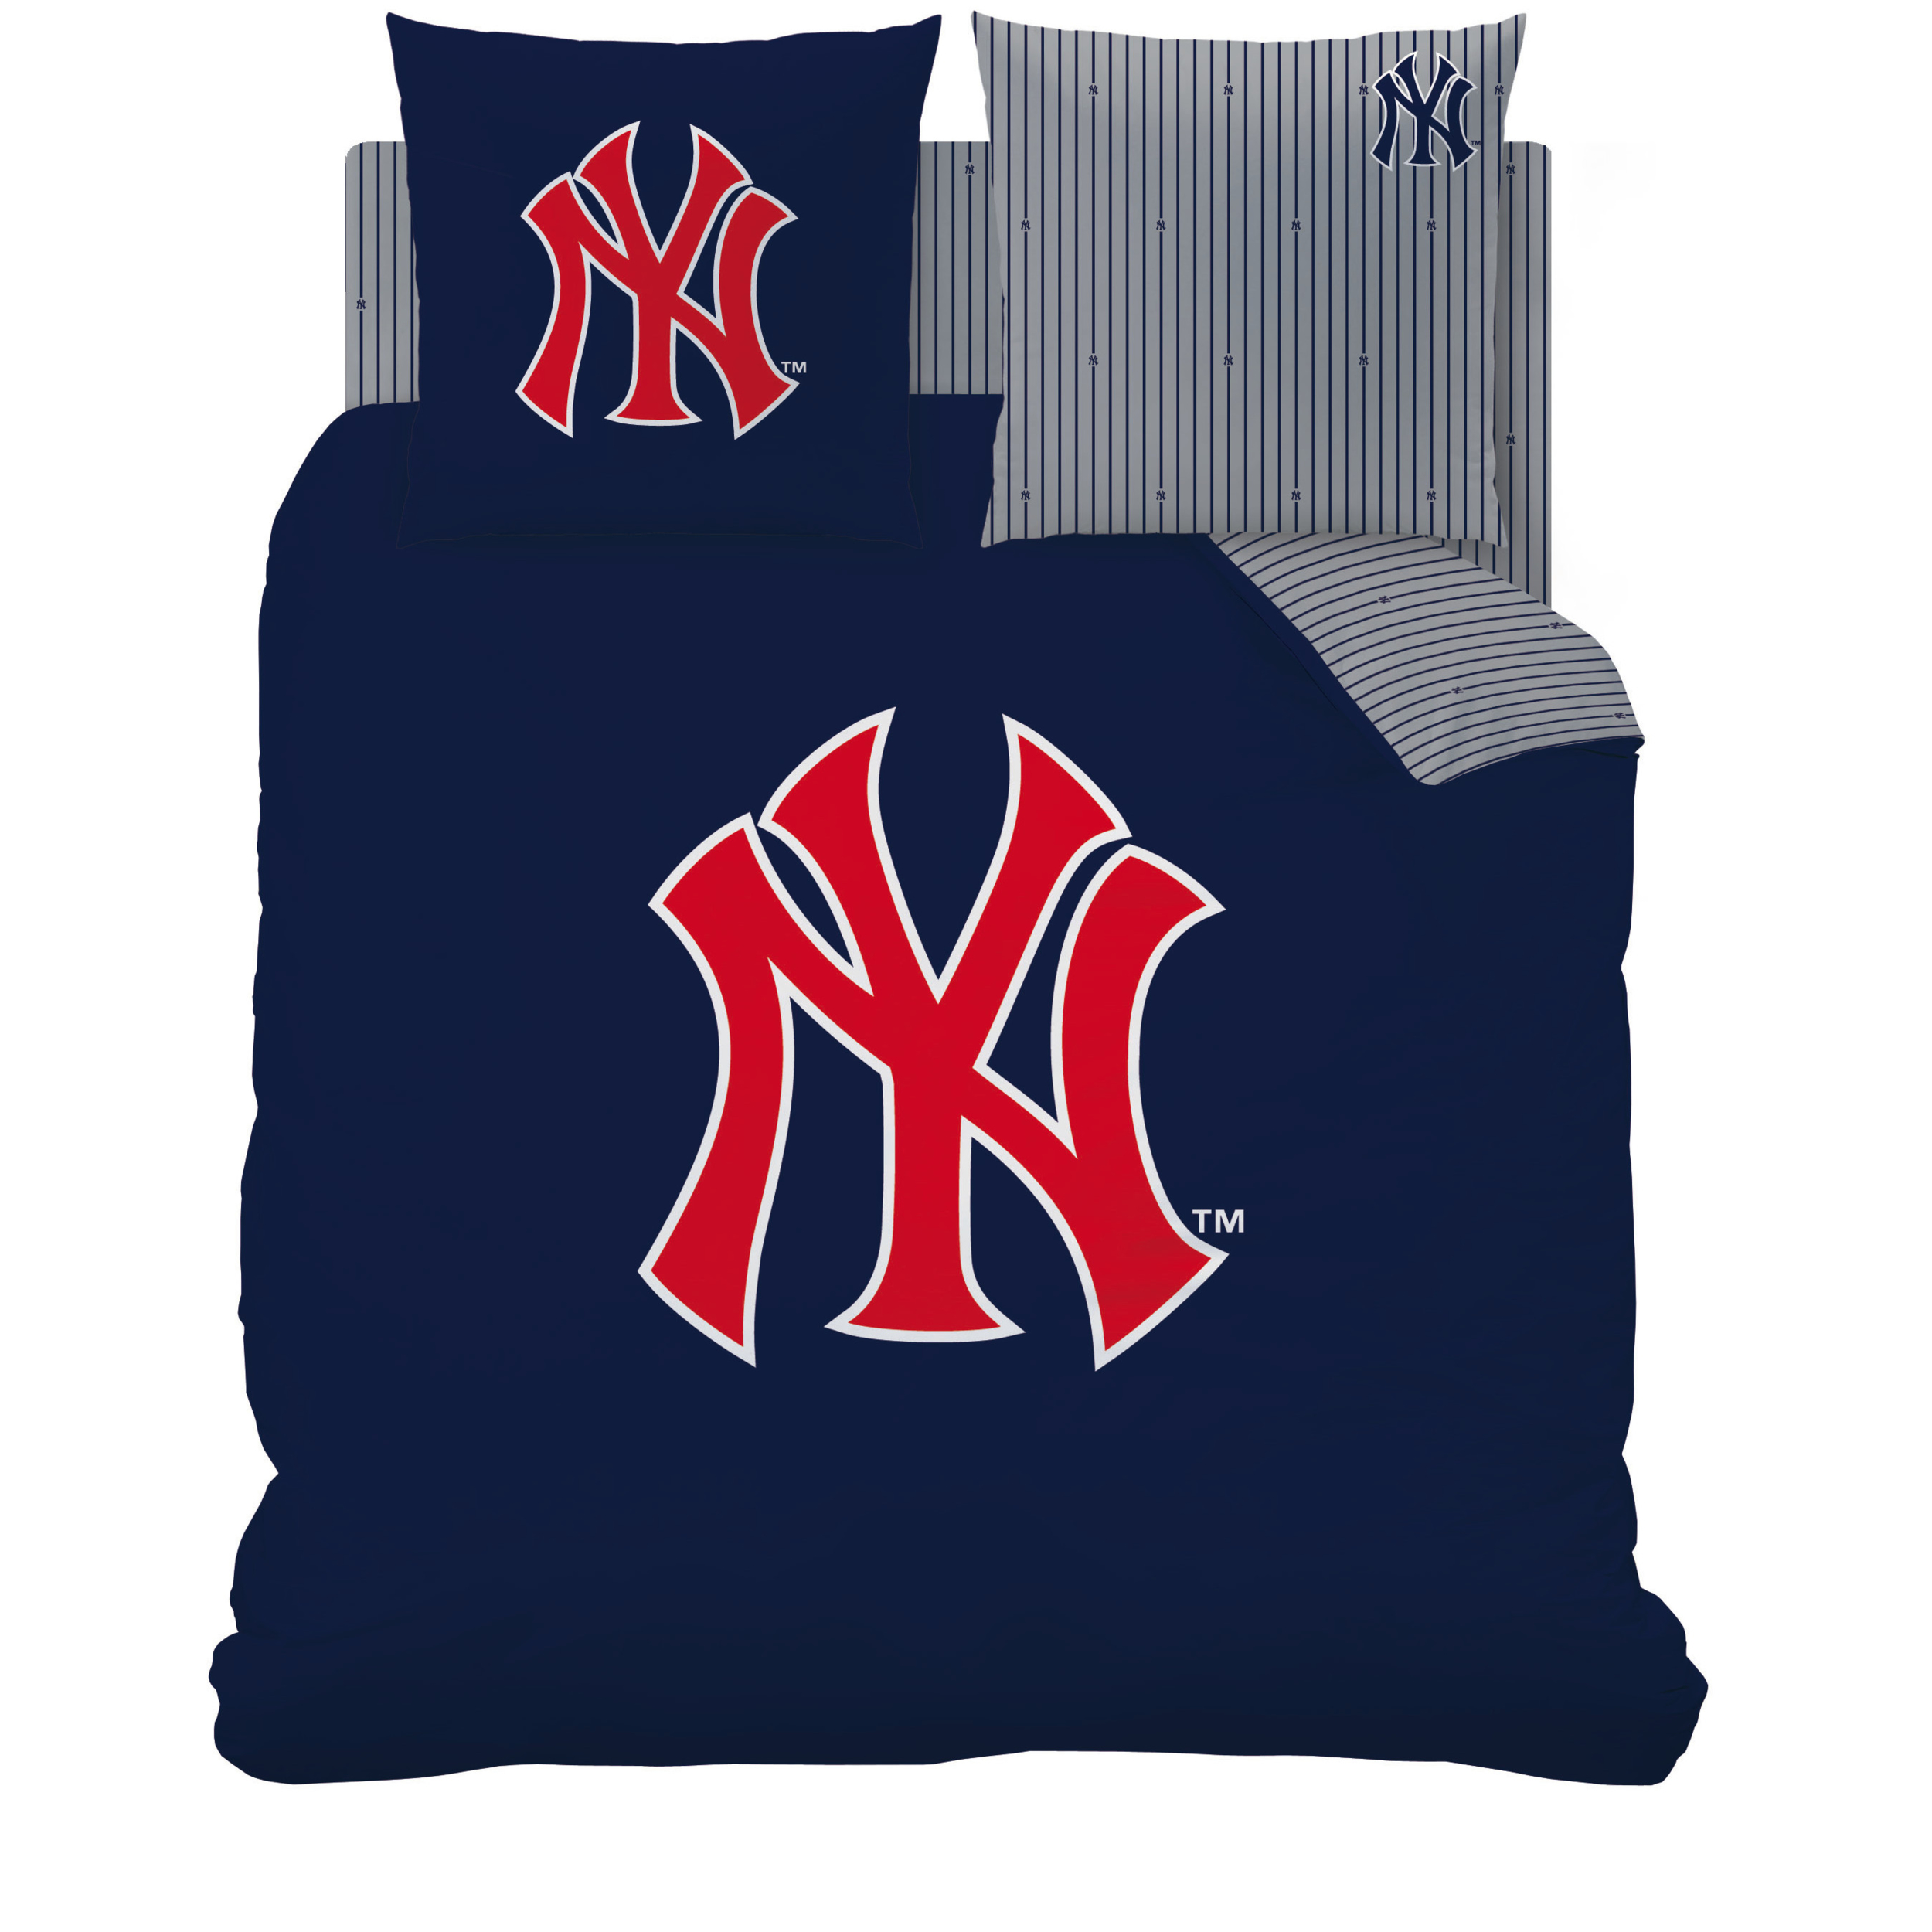 housse de couette new york yankees parure de lit 200 x. Black Bedroom Furniture Sets. Home Design Ideas